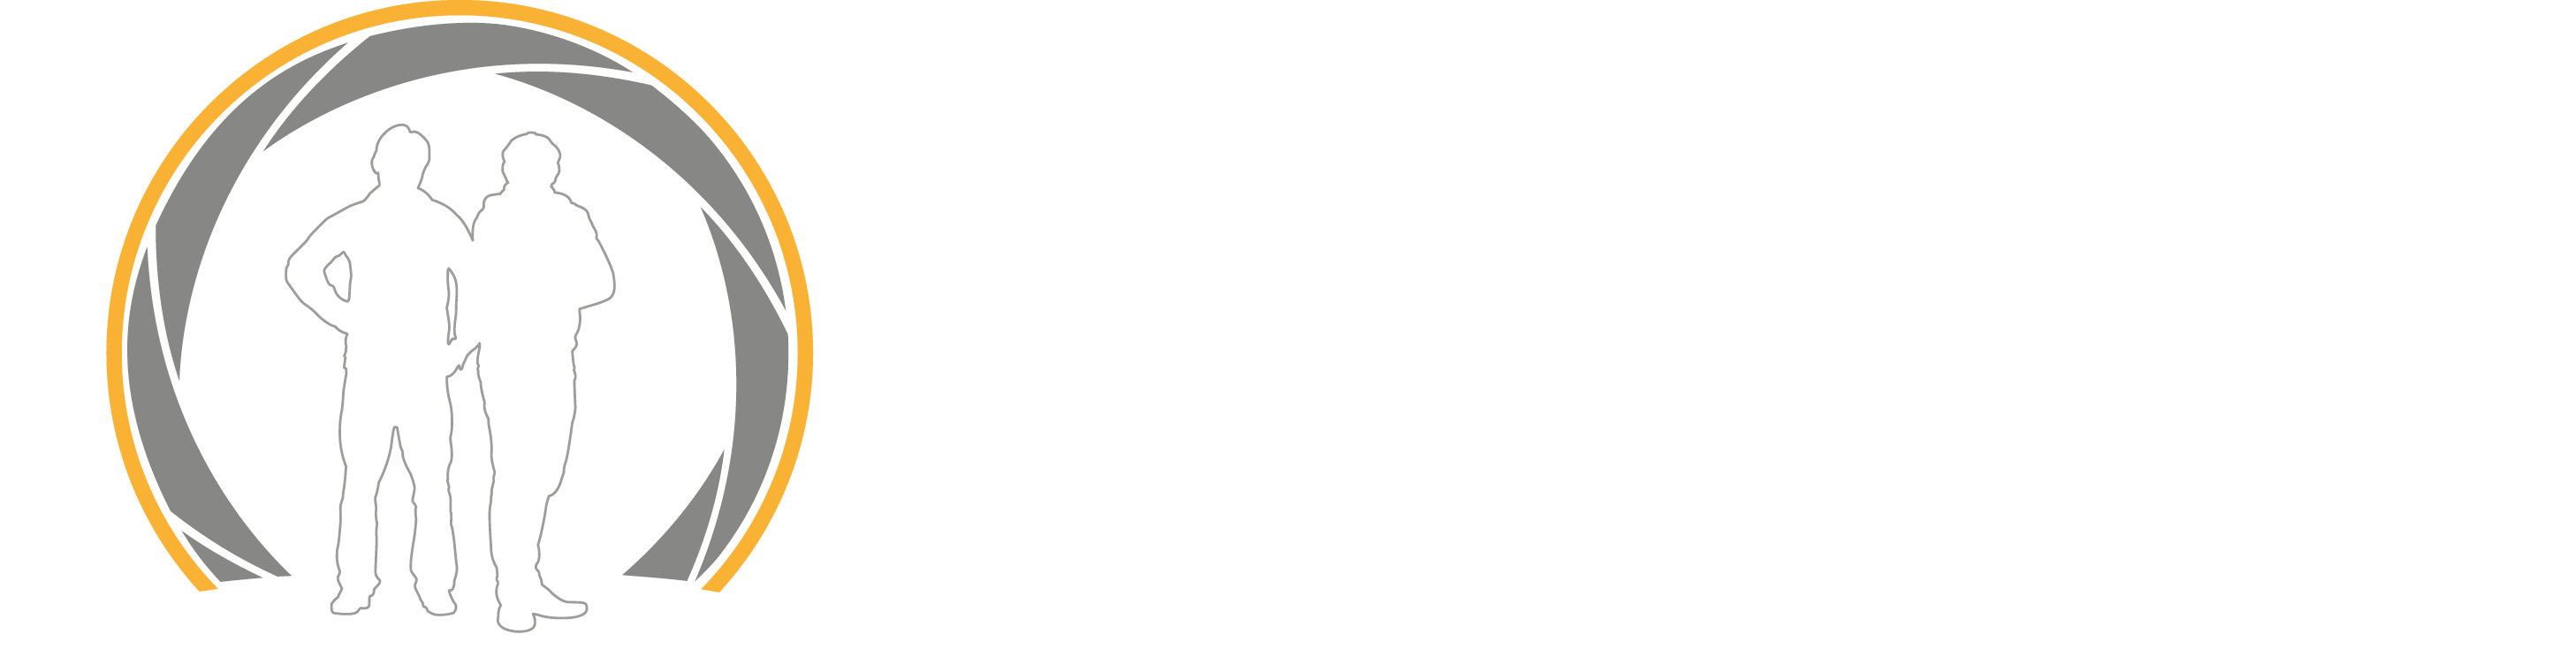 Frames in Company